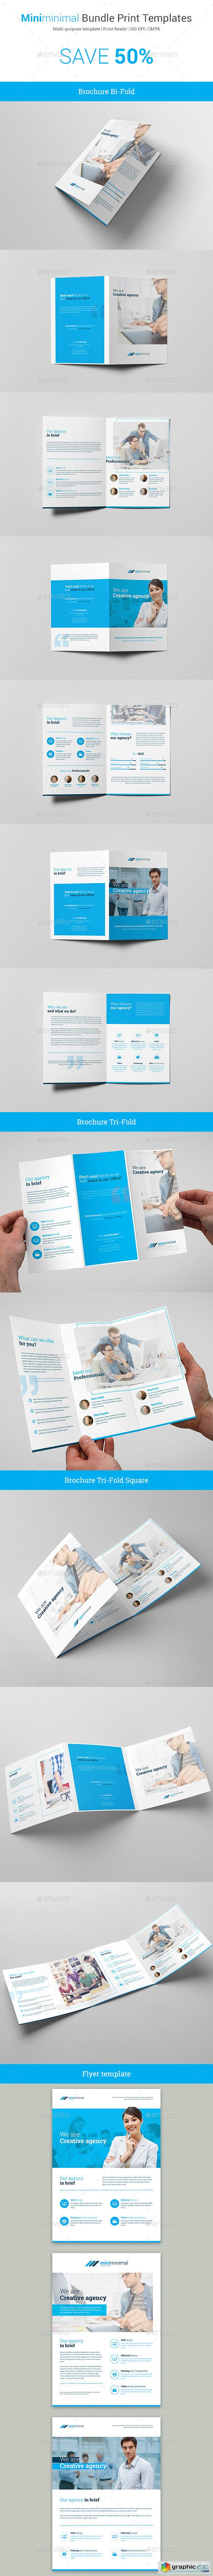 Miniminimal – Business Bundle Print Templates